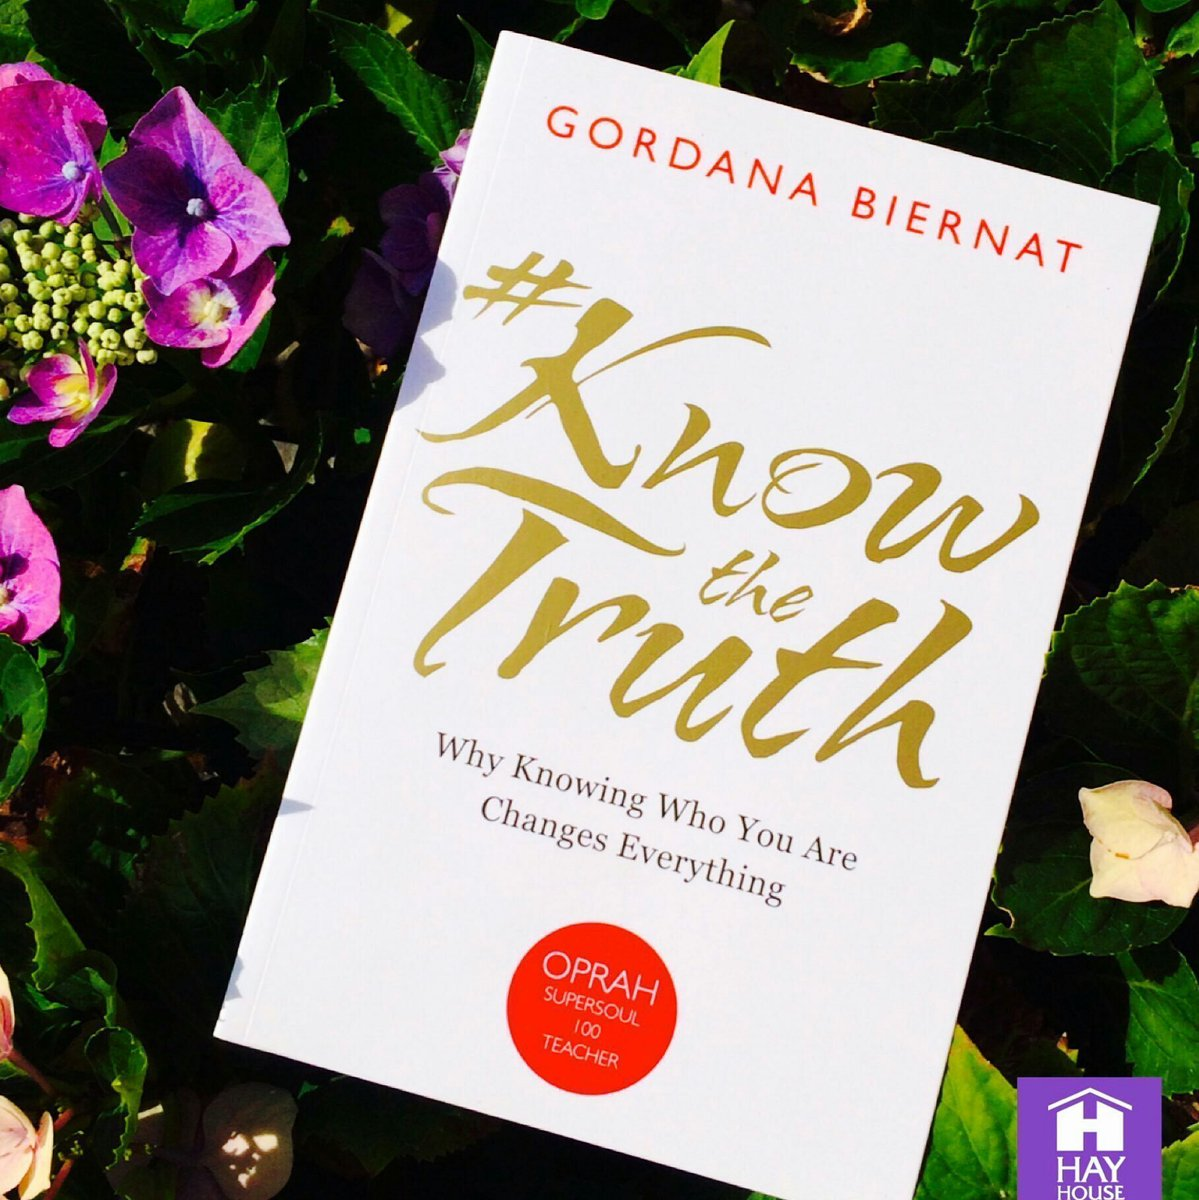 @maeday05 Try following Gordana @MyPowertalk , I bet her tweets from her book will help you.  #KnowTheTruth<br>http://pic.twitter.com/Xmj2zQfRS6